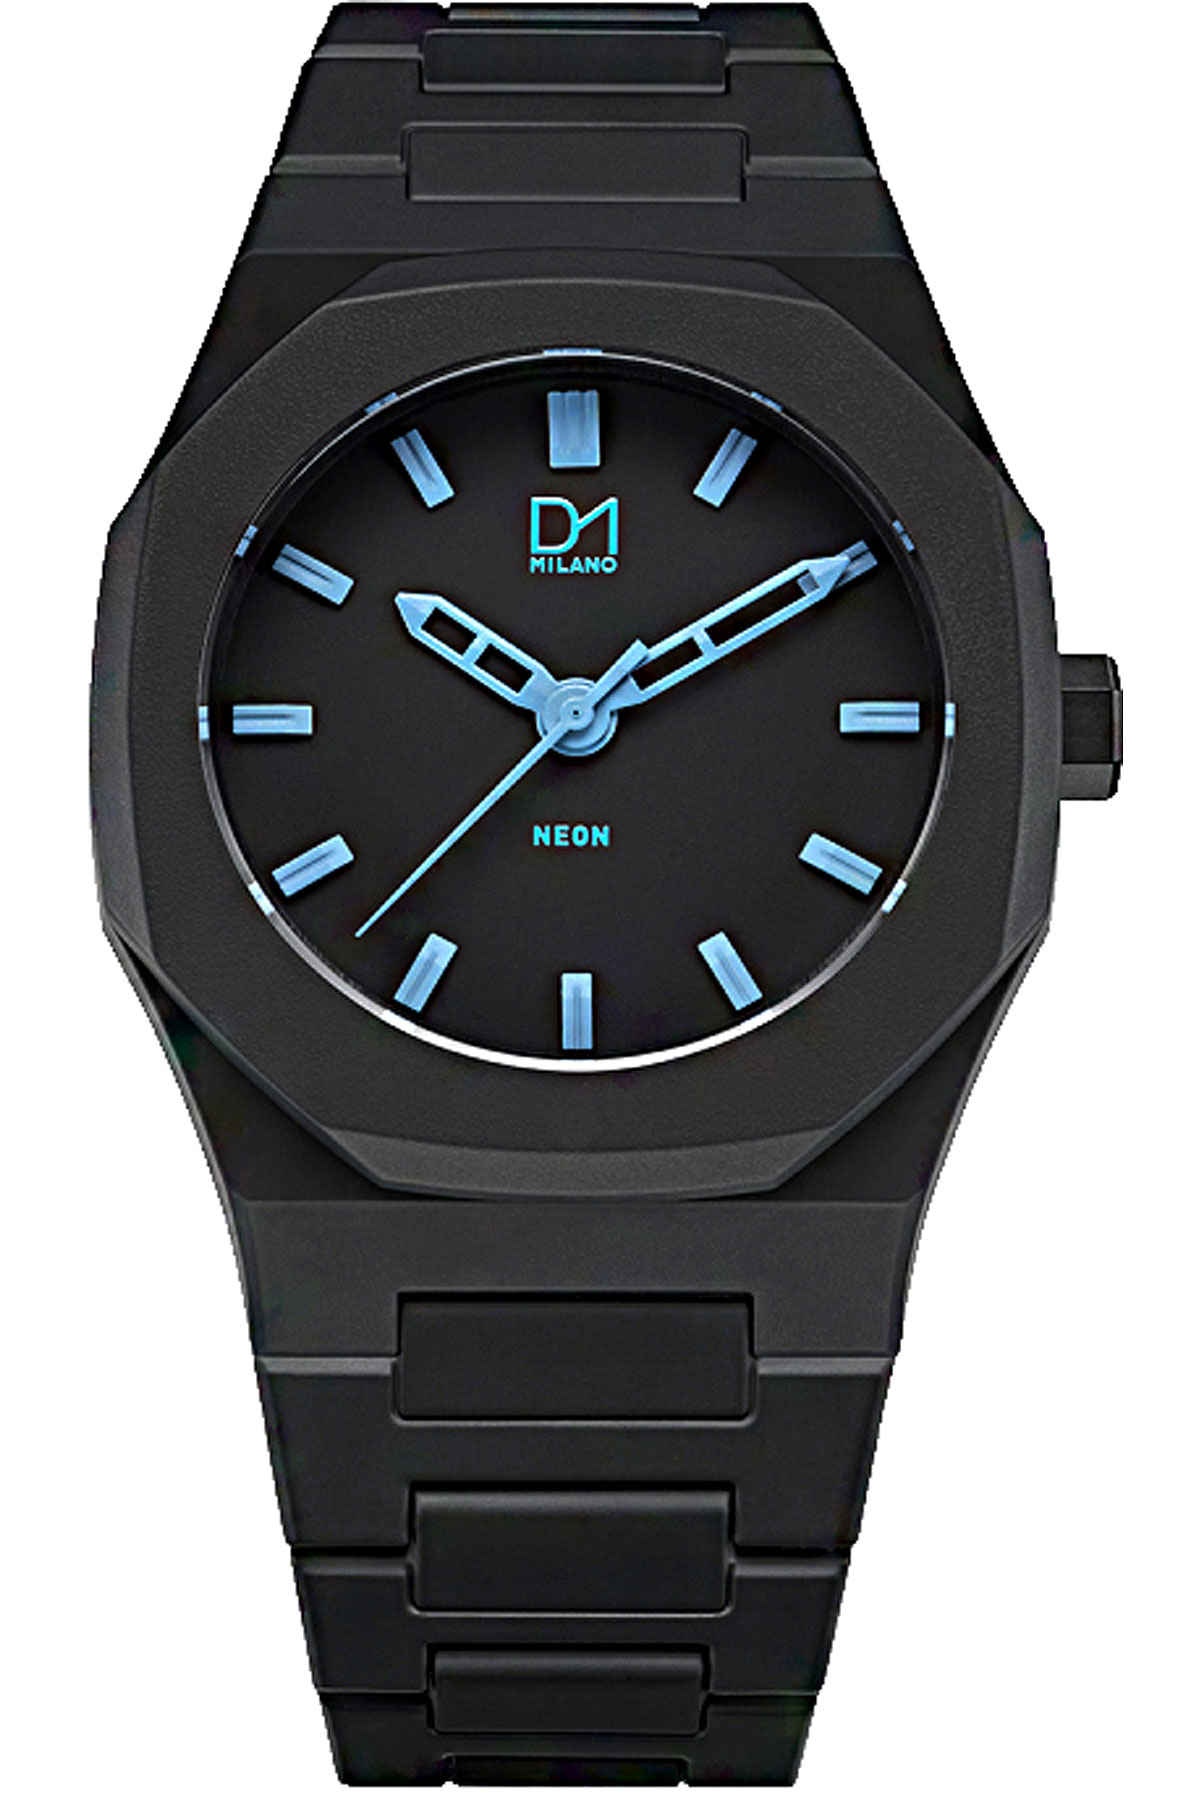 D1 Milano Watch for Men, Black, Polycarbonate, 2019